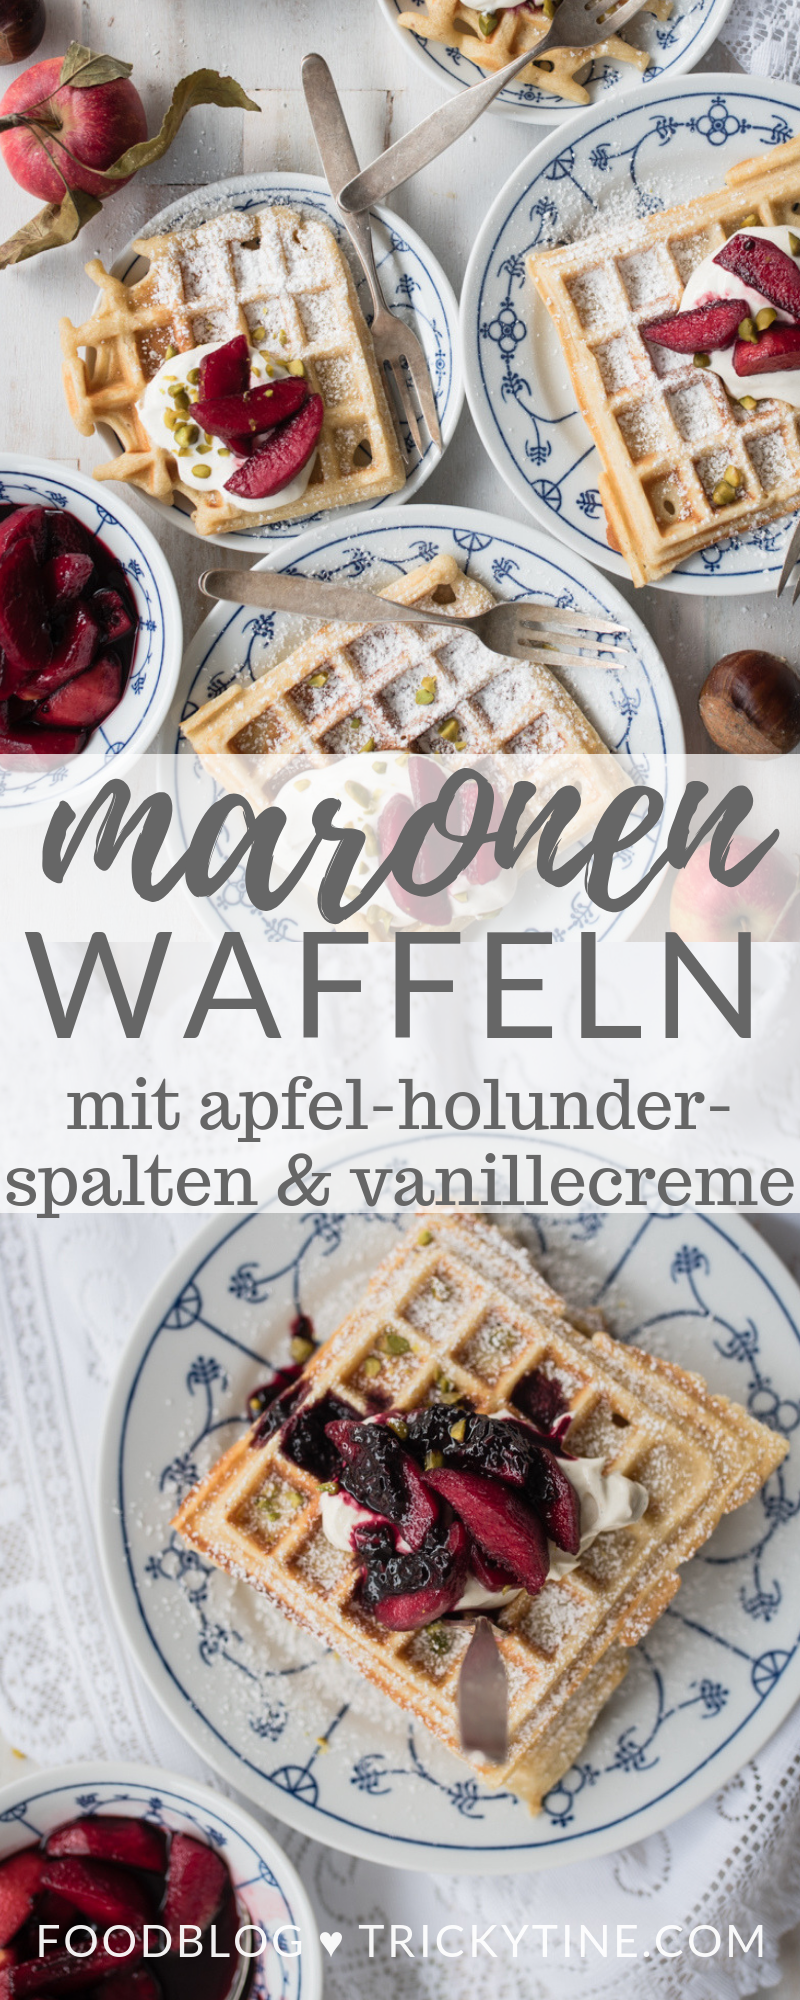 maronenwaffeln trickytine pinterest collage